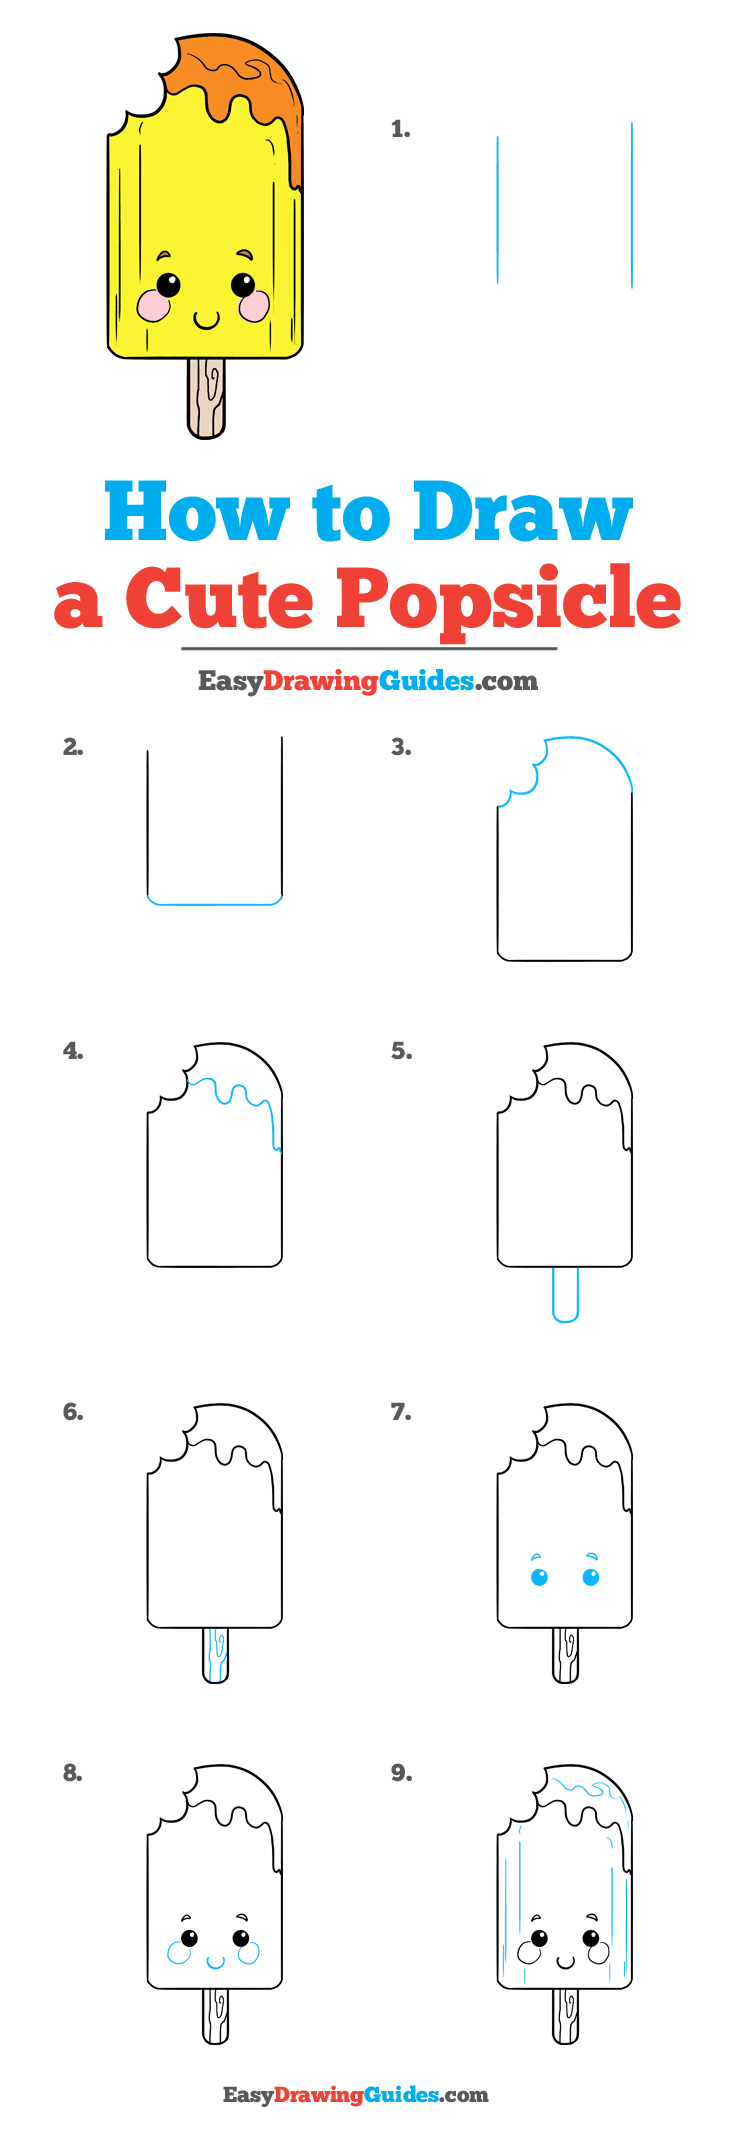 How to Draw Cute Popsicle